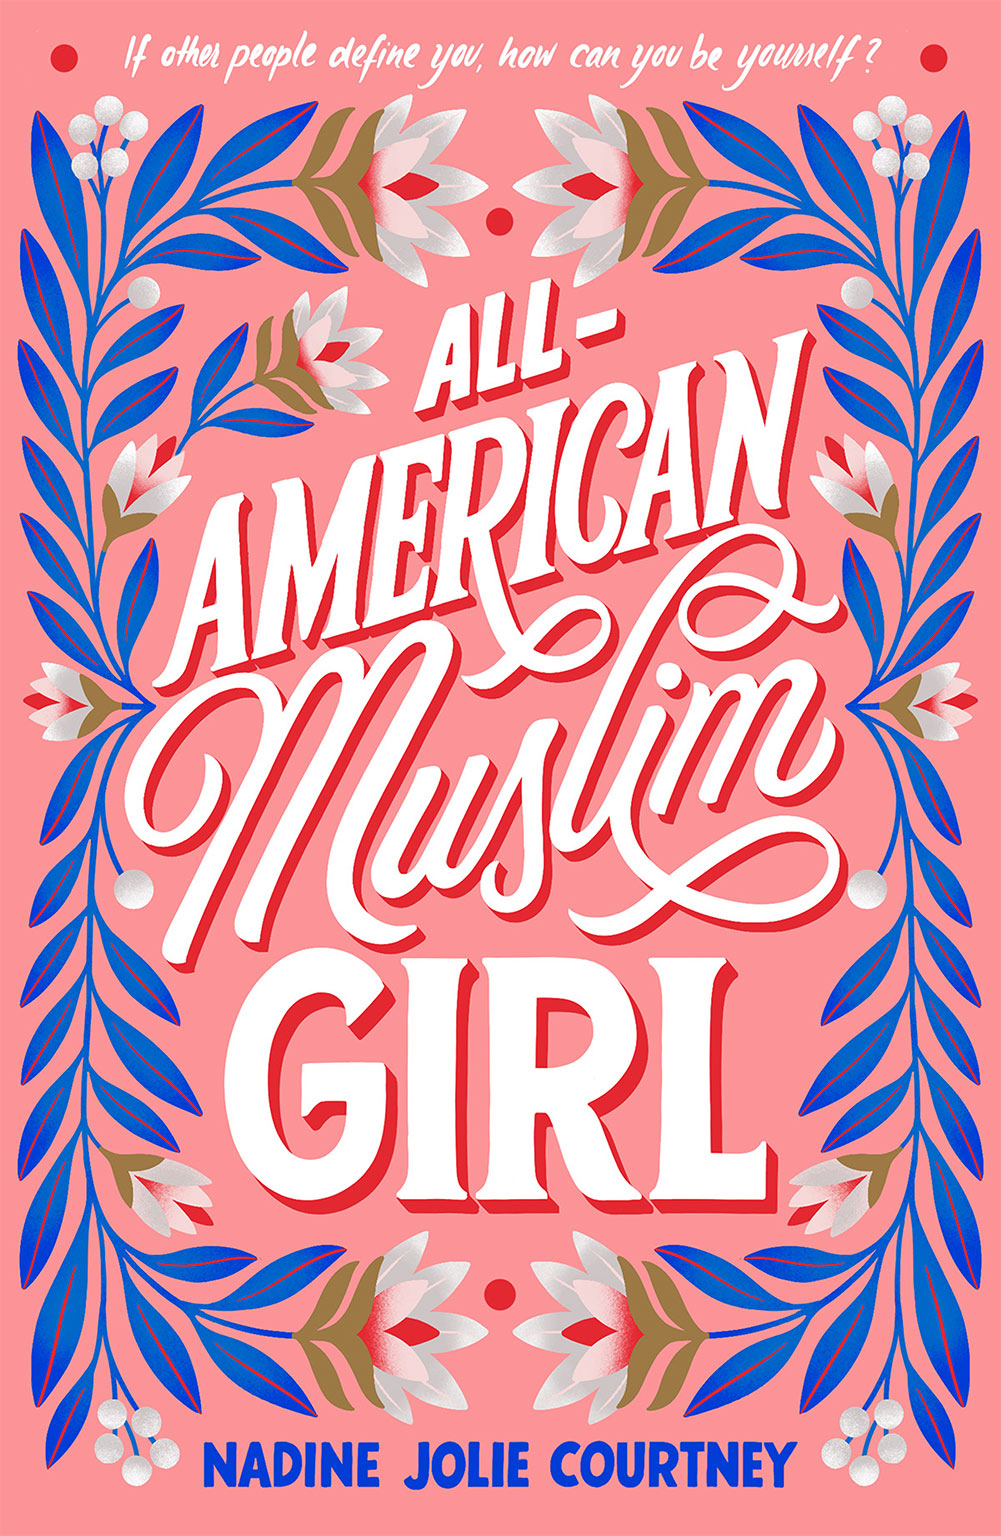 book cover, all american muslim girl